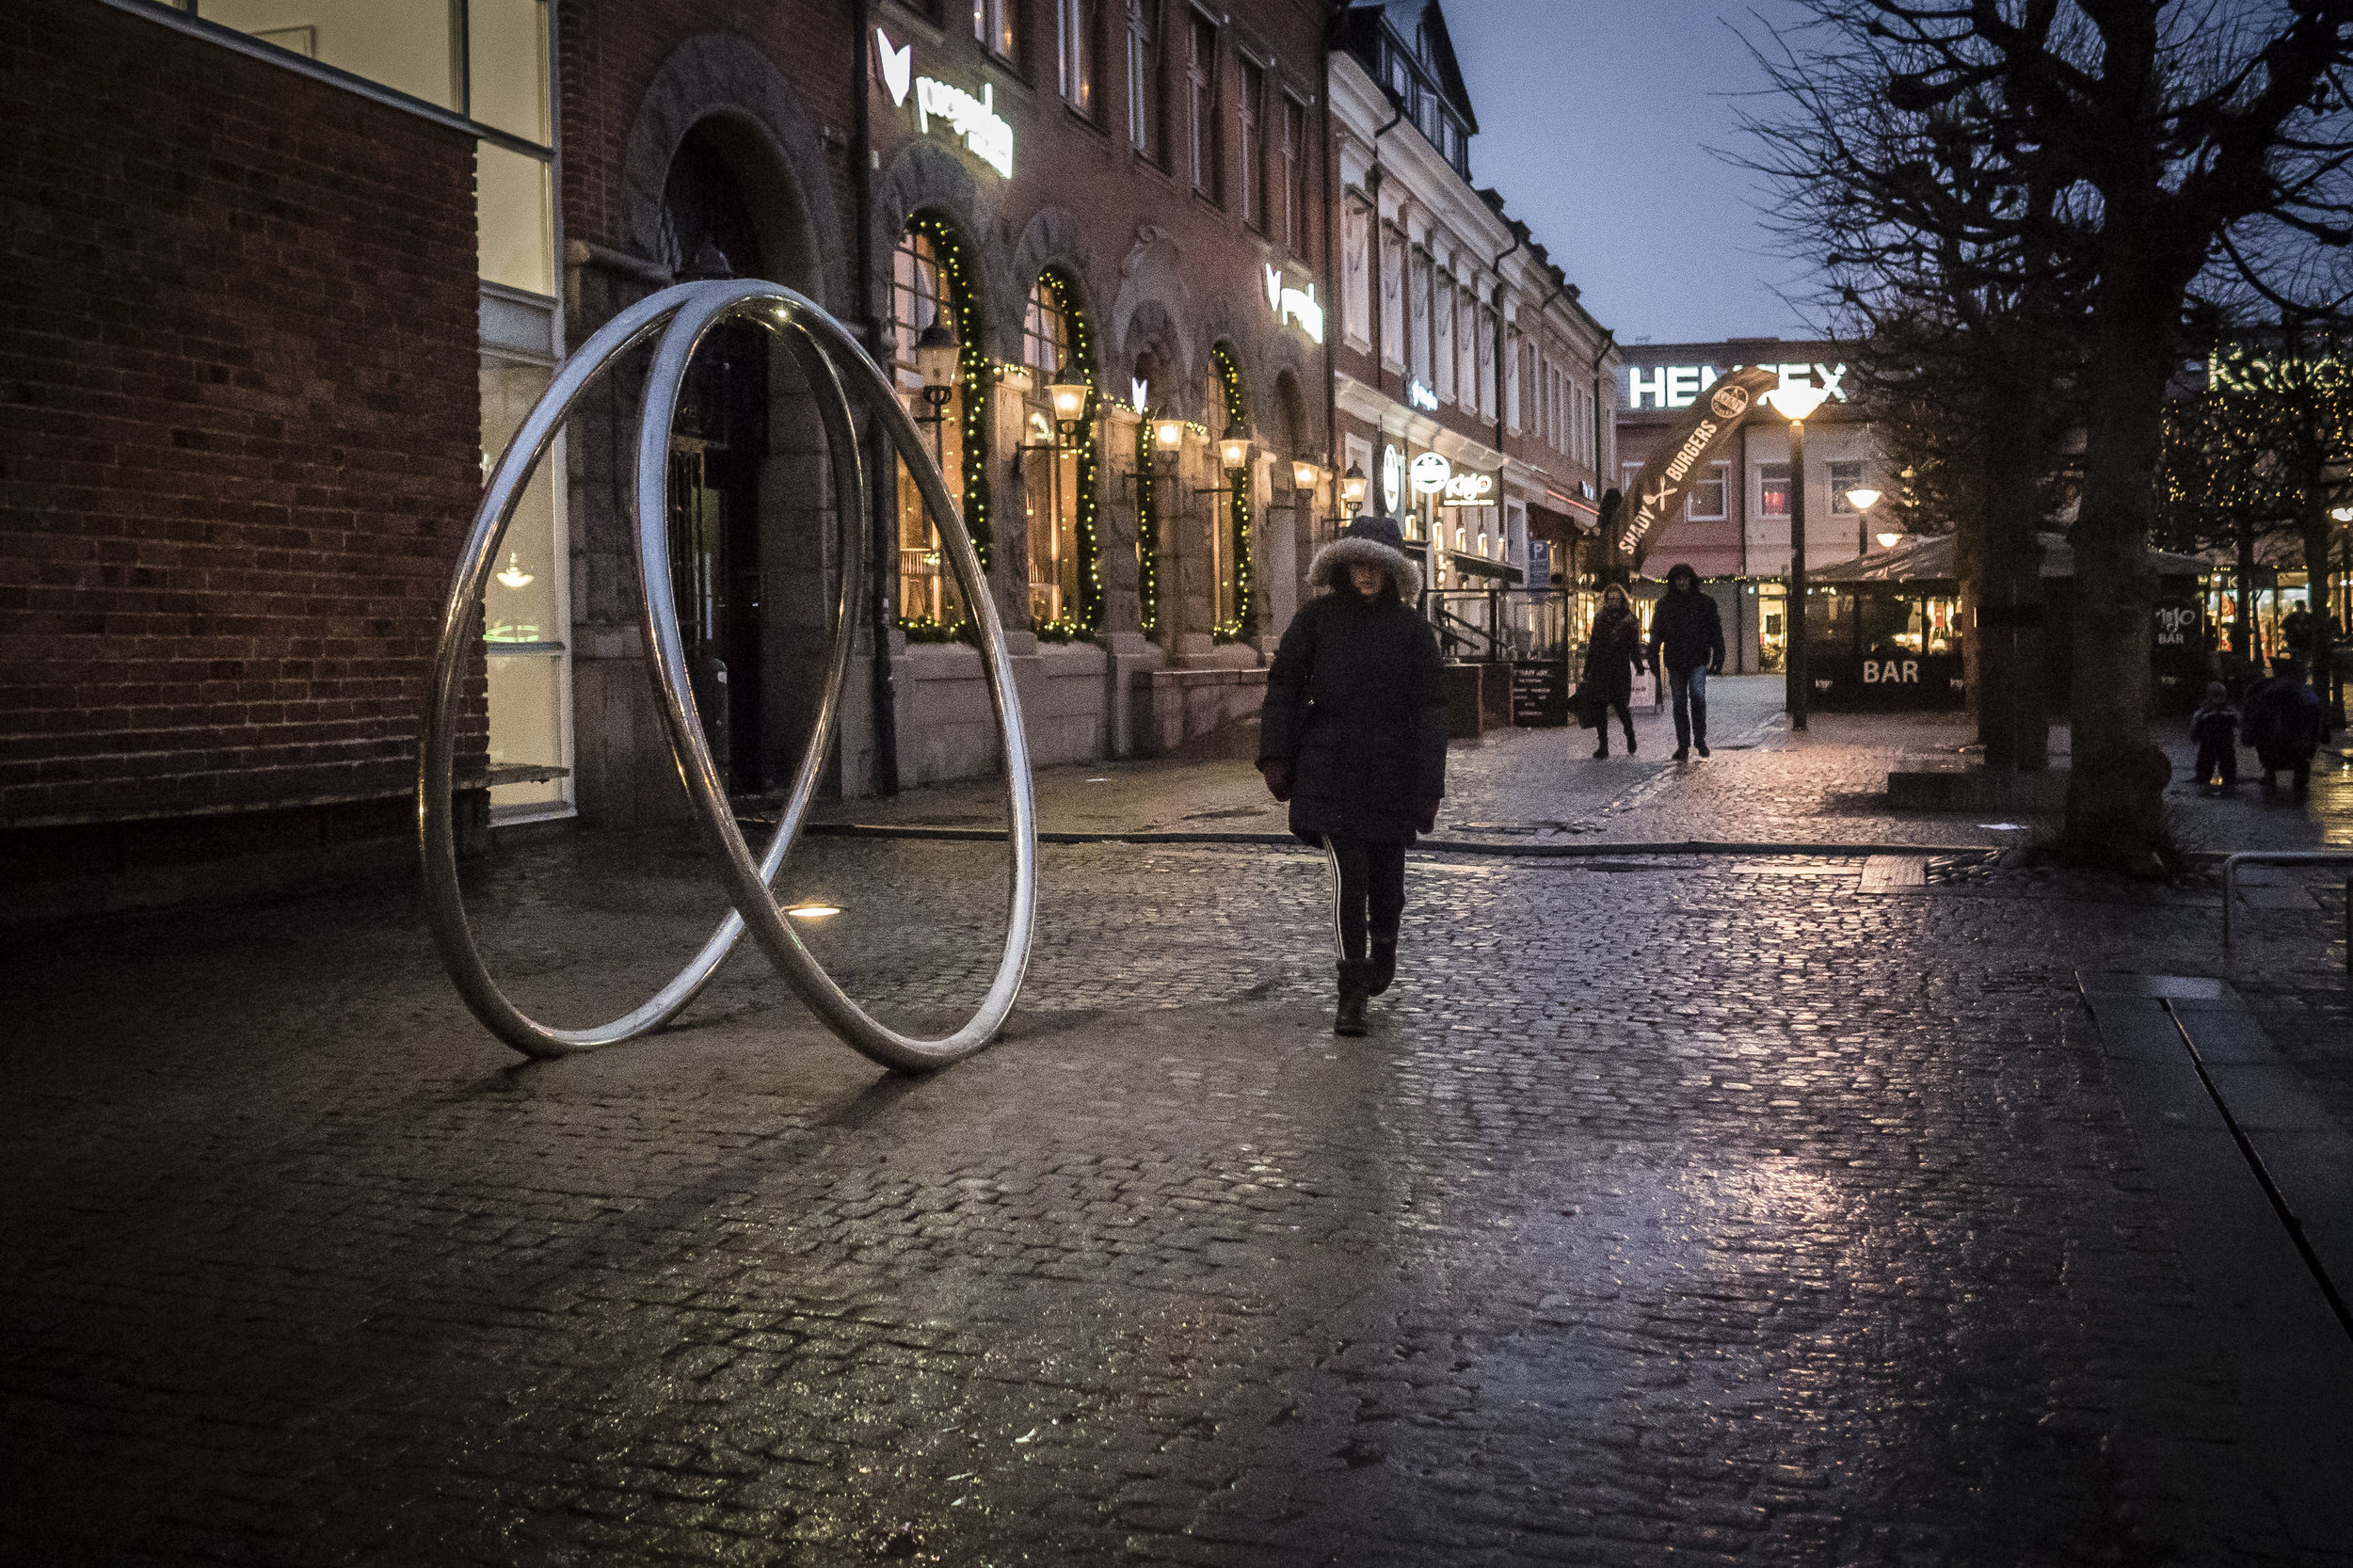 Molly Haslund. Magic Circles, 2018. Mårtenstorget, Lund, Sweden.